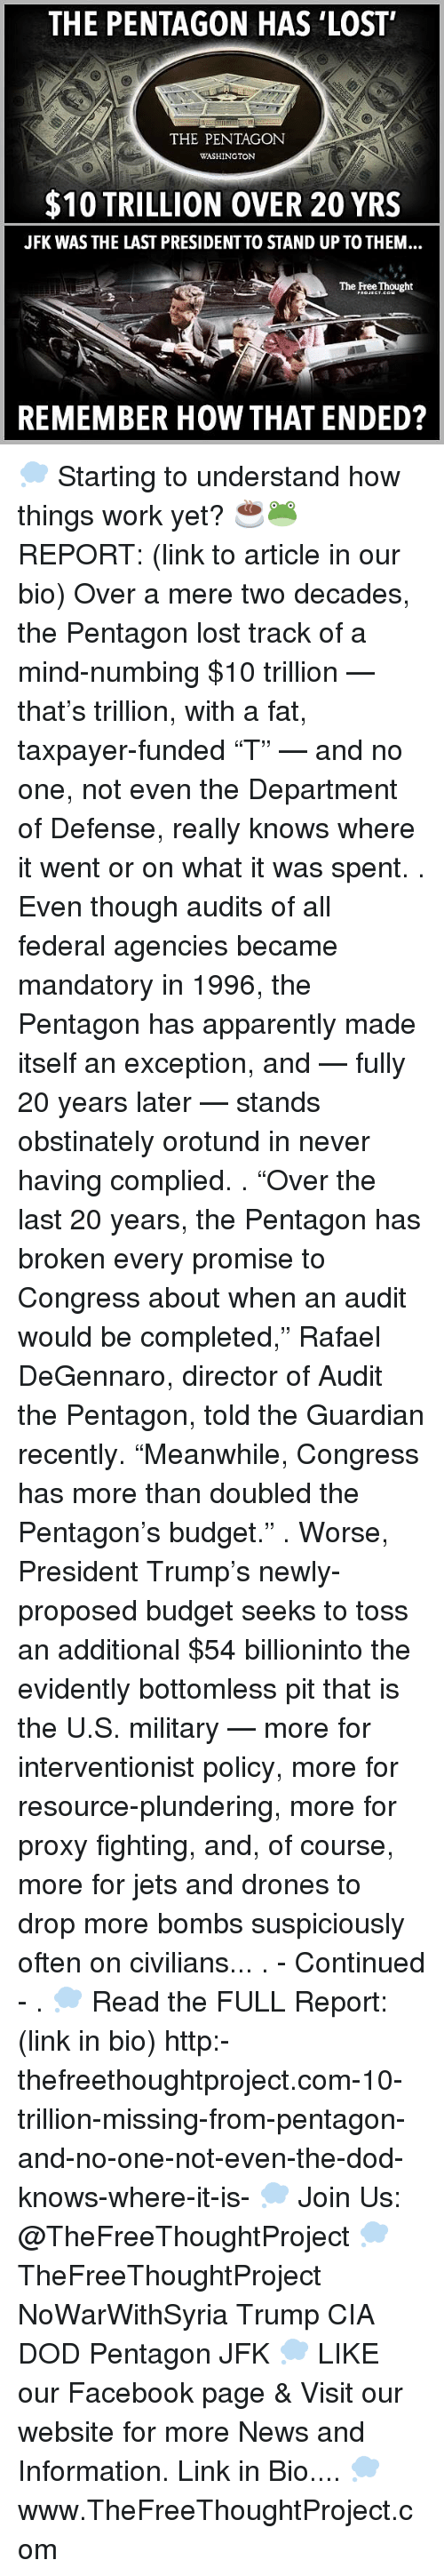 "evidently: THE PENTAGON HAS LOST'  THE PENTAGON  WASHINGTON  $10 TRILLION OVER 20 YRS  JFK WAS THE LAST PRESIDENTTO STAND UP TO THEM  The Free Thought  REMEMBER HOW THAT ENDED? 💭 Starting to understand how things work yet? ☕️🐸 REPORT: (link to article in our bio) Over a mere two decades, the Pentagon lost track of a mind-numbing $10 trillion — that's trillion, with a fat, taxpayer-funded ""T"" — and no one, not even the Department of Defense, really knows where it went or on what it was spent. . Even though audits of all federal agencies became mandatory in 1996, the Pentagon has apparently made itself an exception, and — fully 20 years later — stands obstinately orotund in never having complied. . ""Over the last 20 years, the Pentagon has broken every promise to Congress about when an audit would be completed,"" Rafael DeGennaro, director of Audit the Pentagon, told the Guardian recently. ""Meanwhile, Congress has more than doubled the Pentagon's budget."" . Worse, President Trump's newly-proposed budget seeks to toss an additional $54 billioninto the evidently bottomless pit that is the U.S. military — more for interventionist policy, more for resource-plundering, more for proxy fighting, and, of course, more for jets and drones to drop more bombs suspiciously often on civilians... . - Continued - . 💭 Read the FULL Report: (link in bio) http:-thefreethoughtproject.com-10-trillion-missing-from-pentagon-and-no-one-not-even-the-dod-knows-where-it-is- 💭 Join Us: @TheFreeThoughtProject 💭 TheFreeThoughtProject NoWarWithSyria Trump CIA DOD Pentagon JFK 💭 LIKE our Facebook page & Visit our website for more News and Information. Link in Bio.... 💭 www.TheFreeThoughtProject.com"